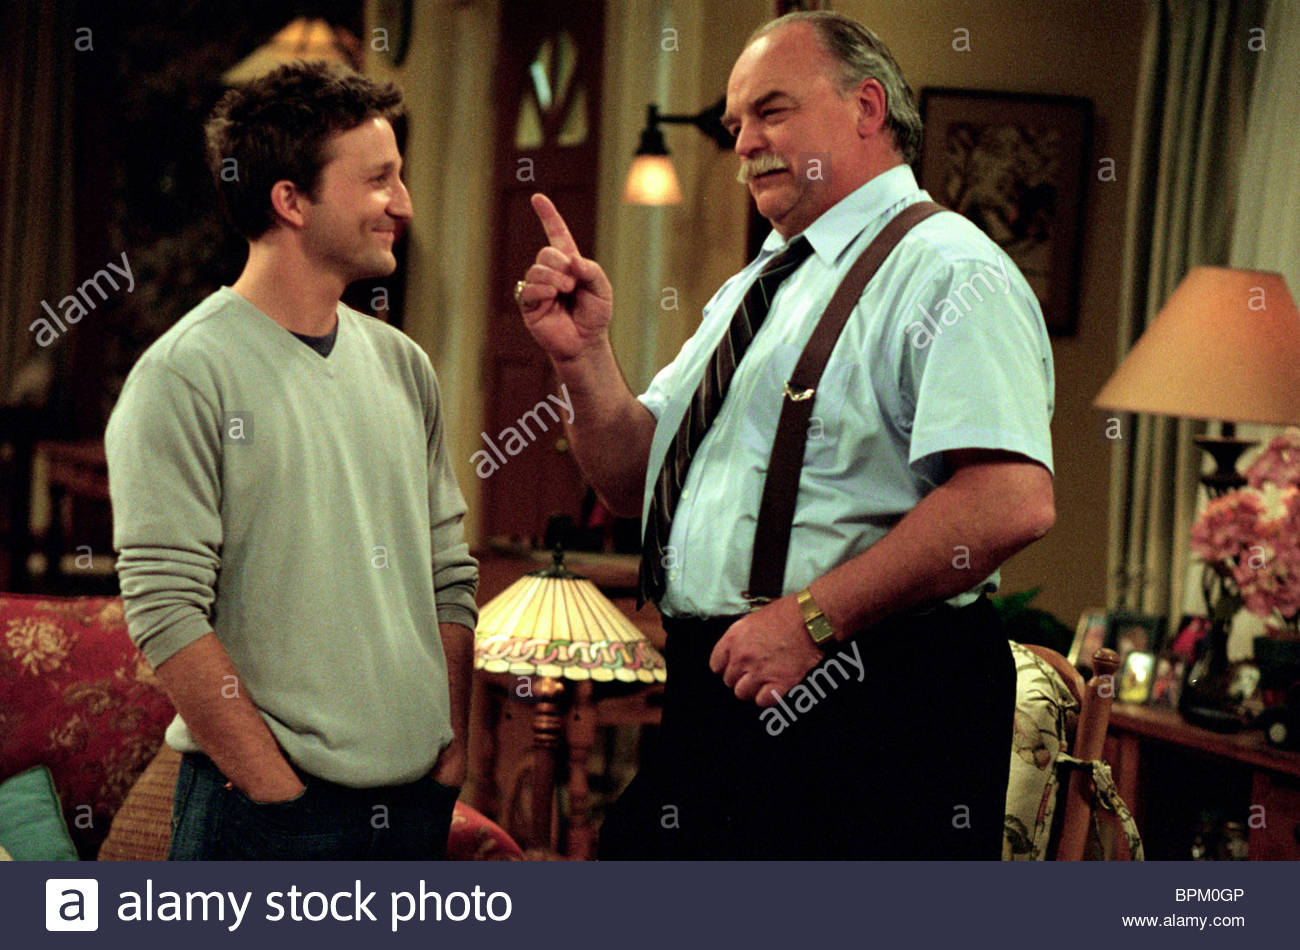 breckin-meyer-richard-riehle-married-to-the-kellys-2003-BPM0GP